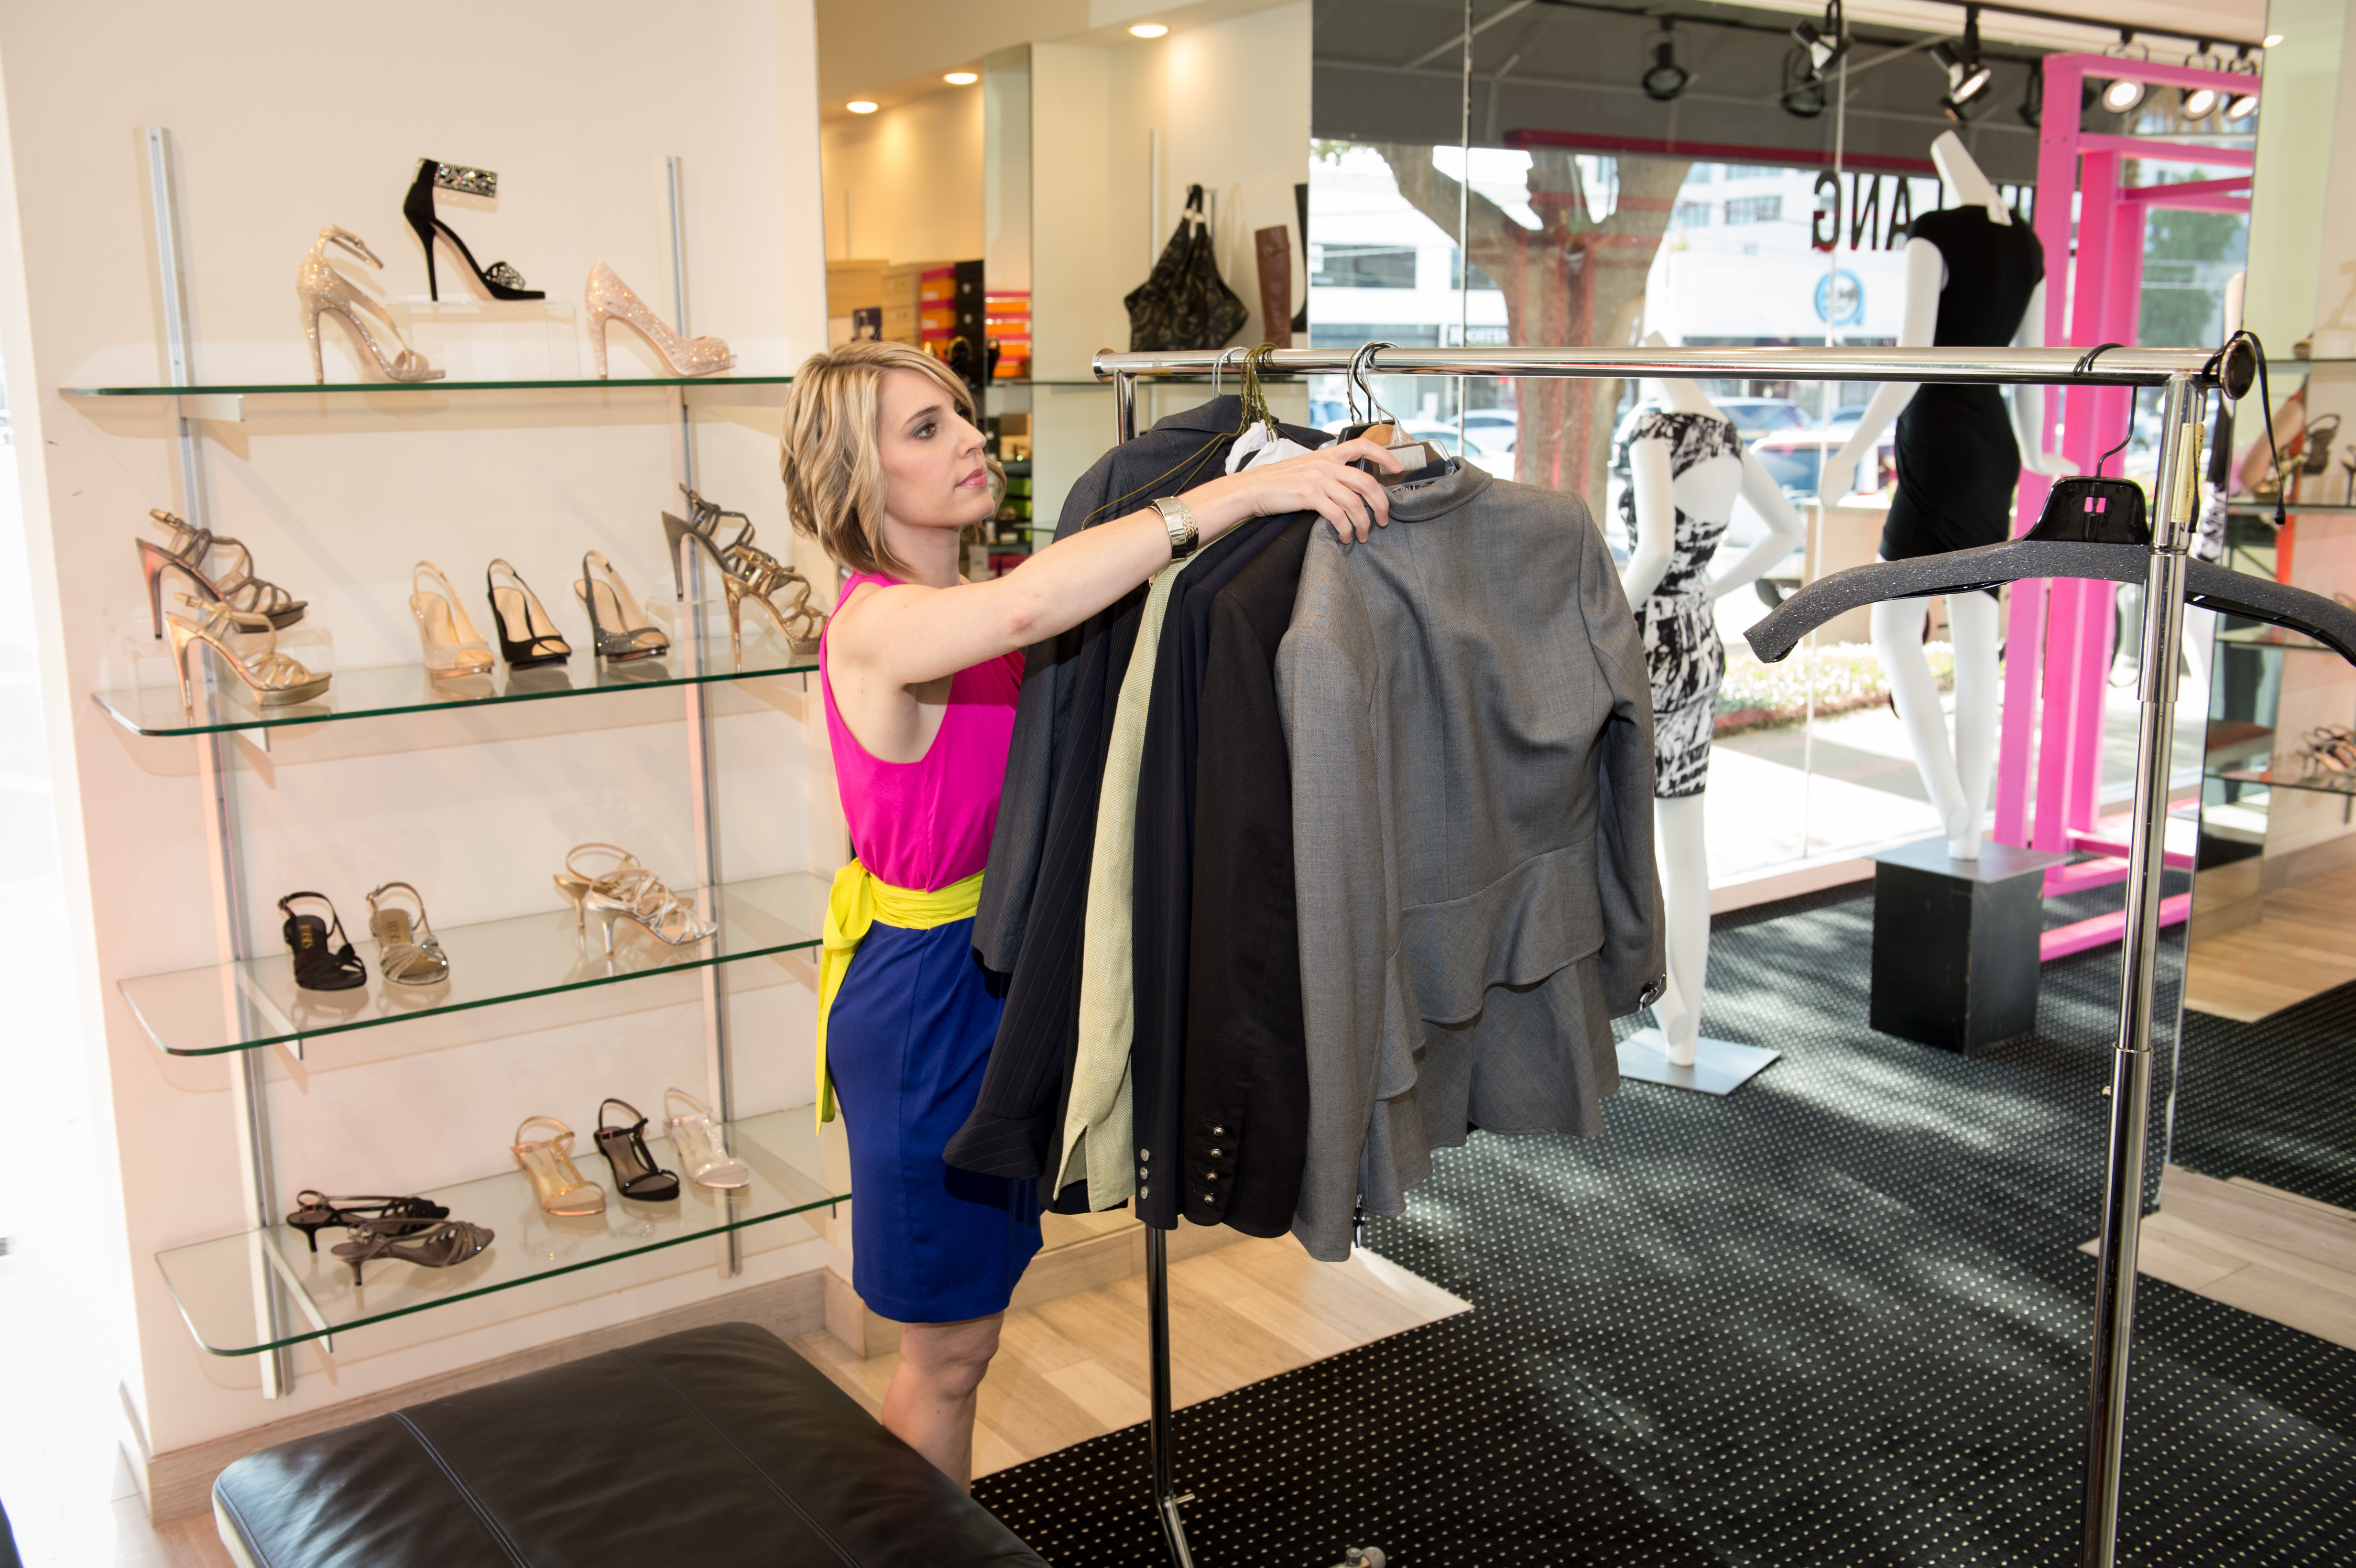 Mary Kay S Suits For Shelters Helps Women In Need With New Outfit